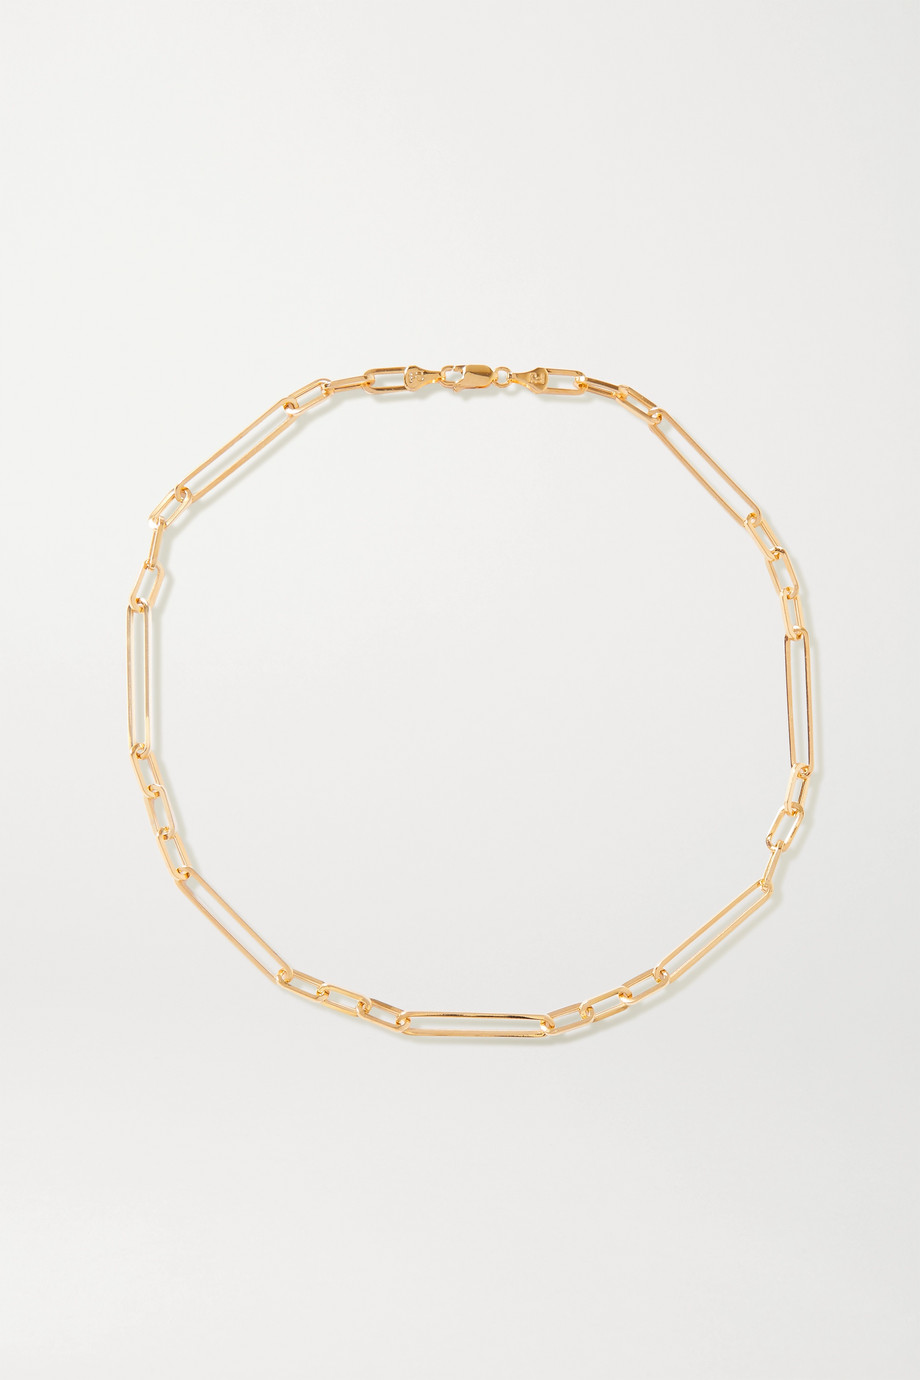 Loren Stewart Gold necklace